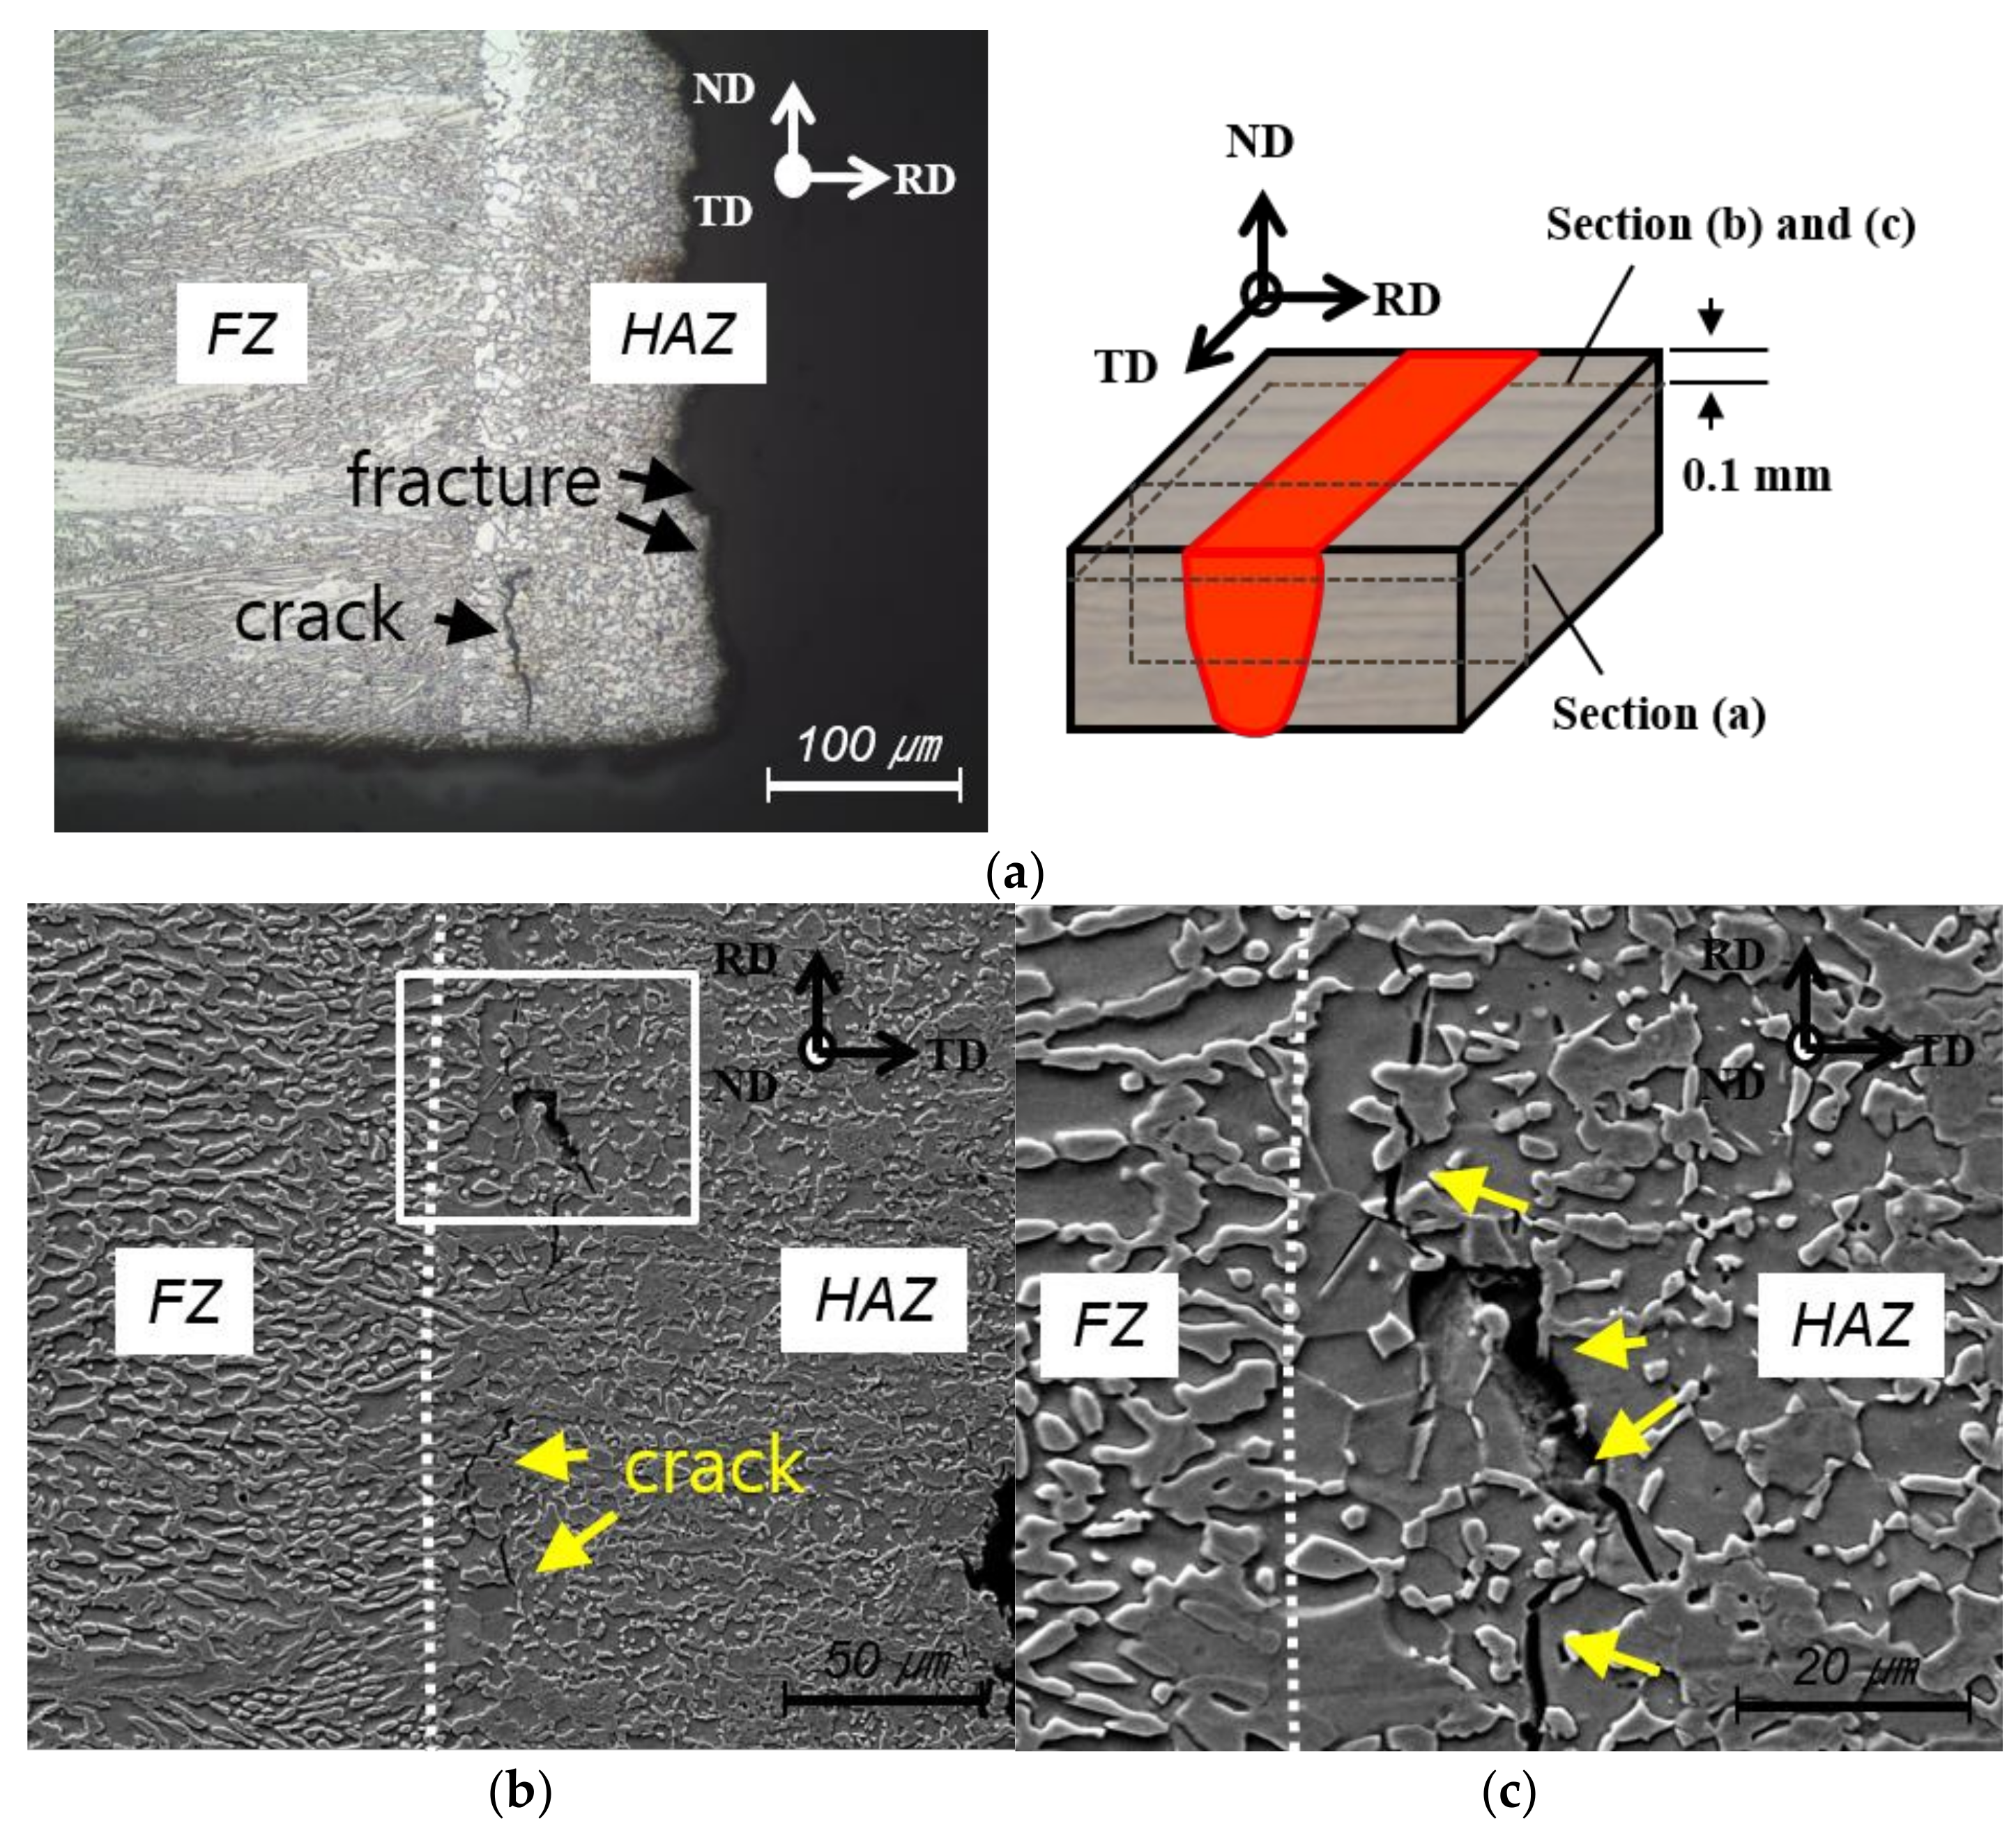 Mechanical properties of laser welded semi-solid metal cast A356 alloy